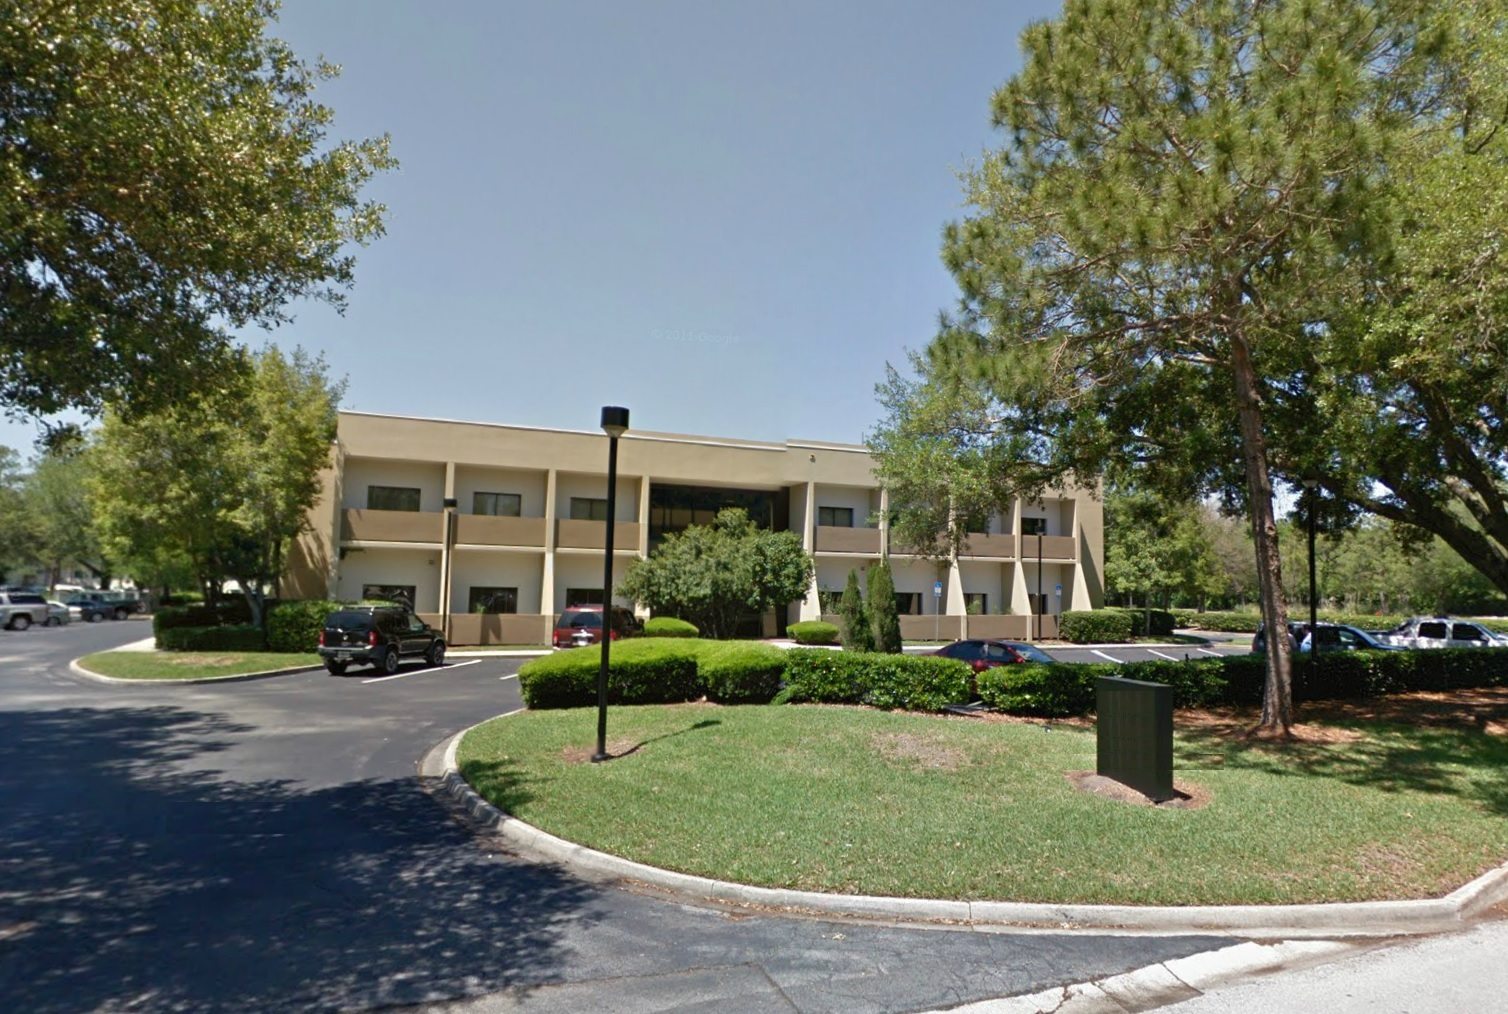 Southpoint Suites, LLC - Southpoint Dr N - Jacksonville - FL